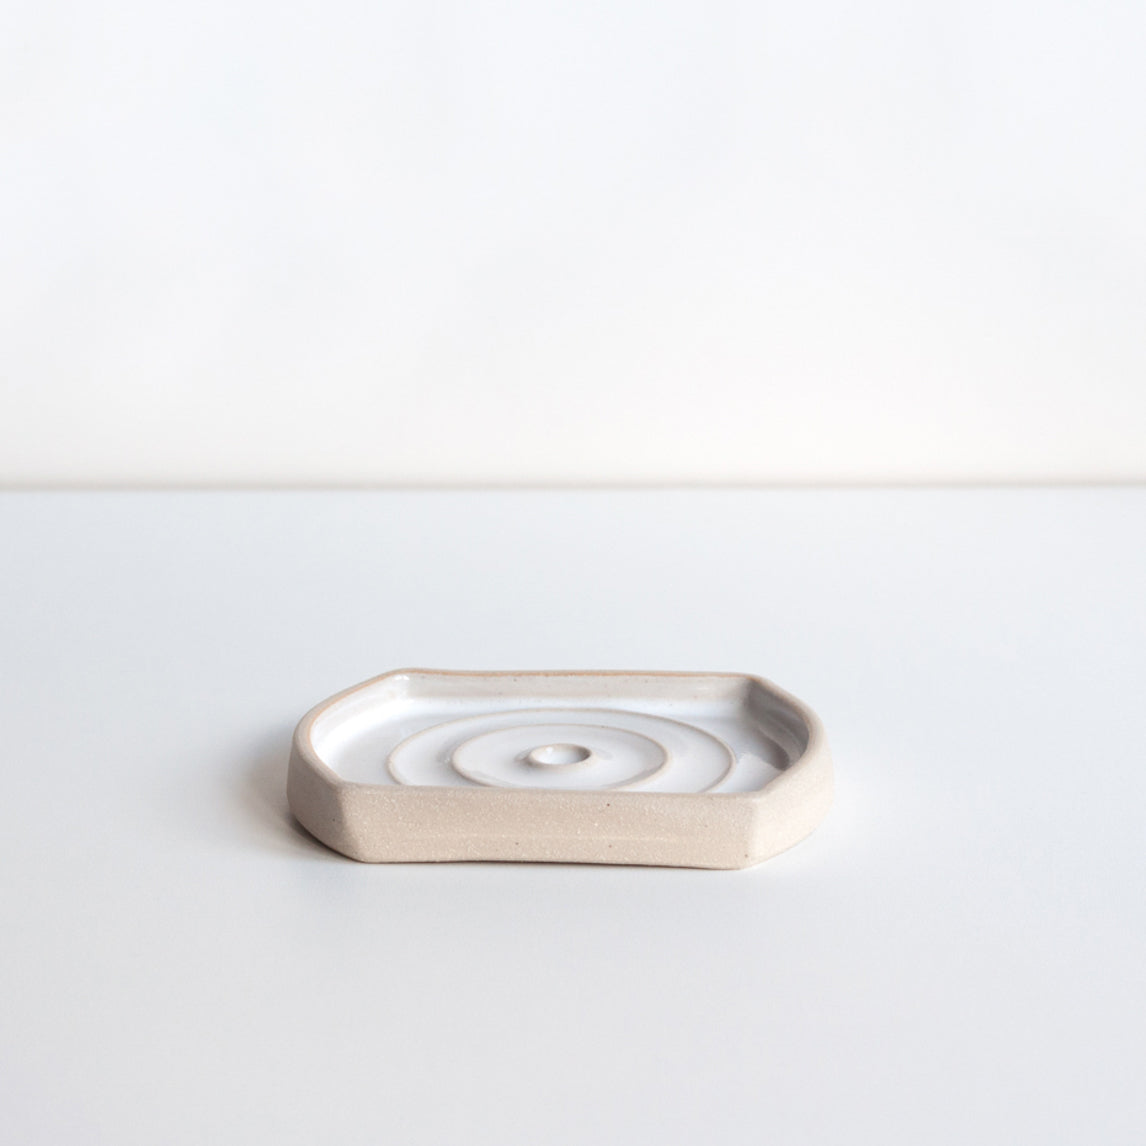 Drip Soap Dish - Rectangular, Soap Dish - DOR & TAN | Contemporary Handmade Tableware